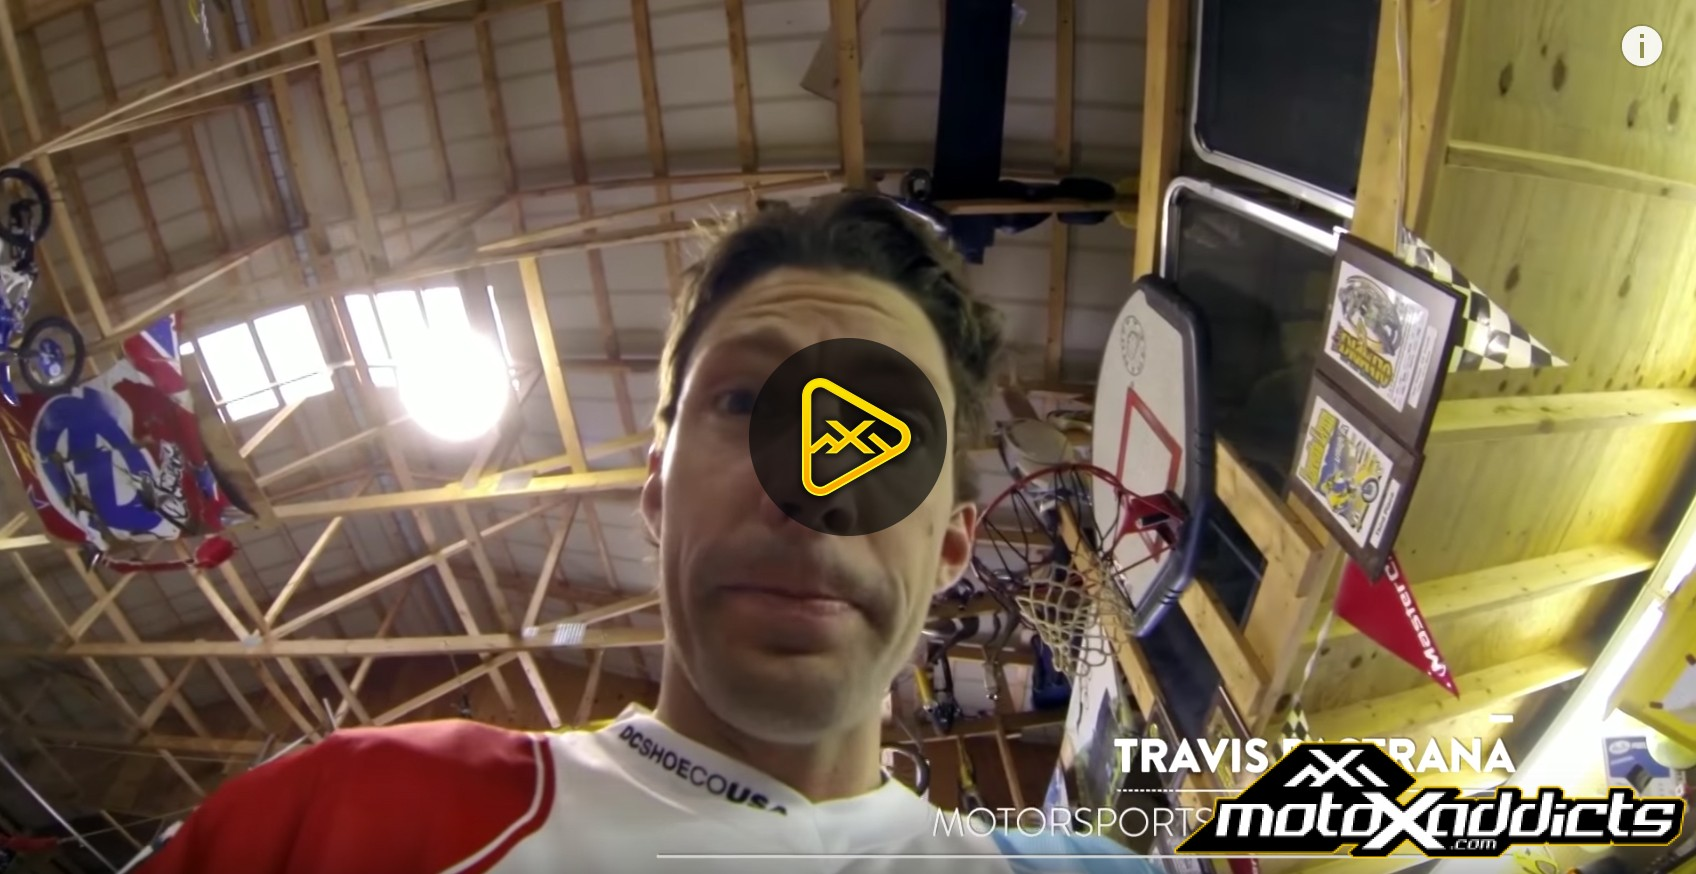 Helmet Cam: Travis Pastrana  at His Private Compound –  On Any Sunday